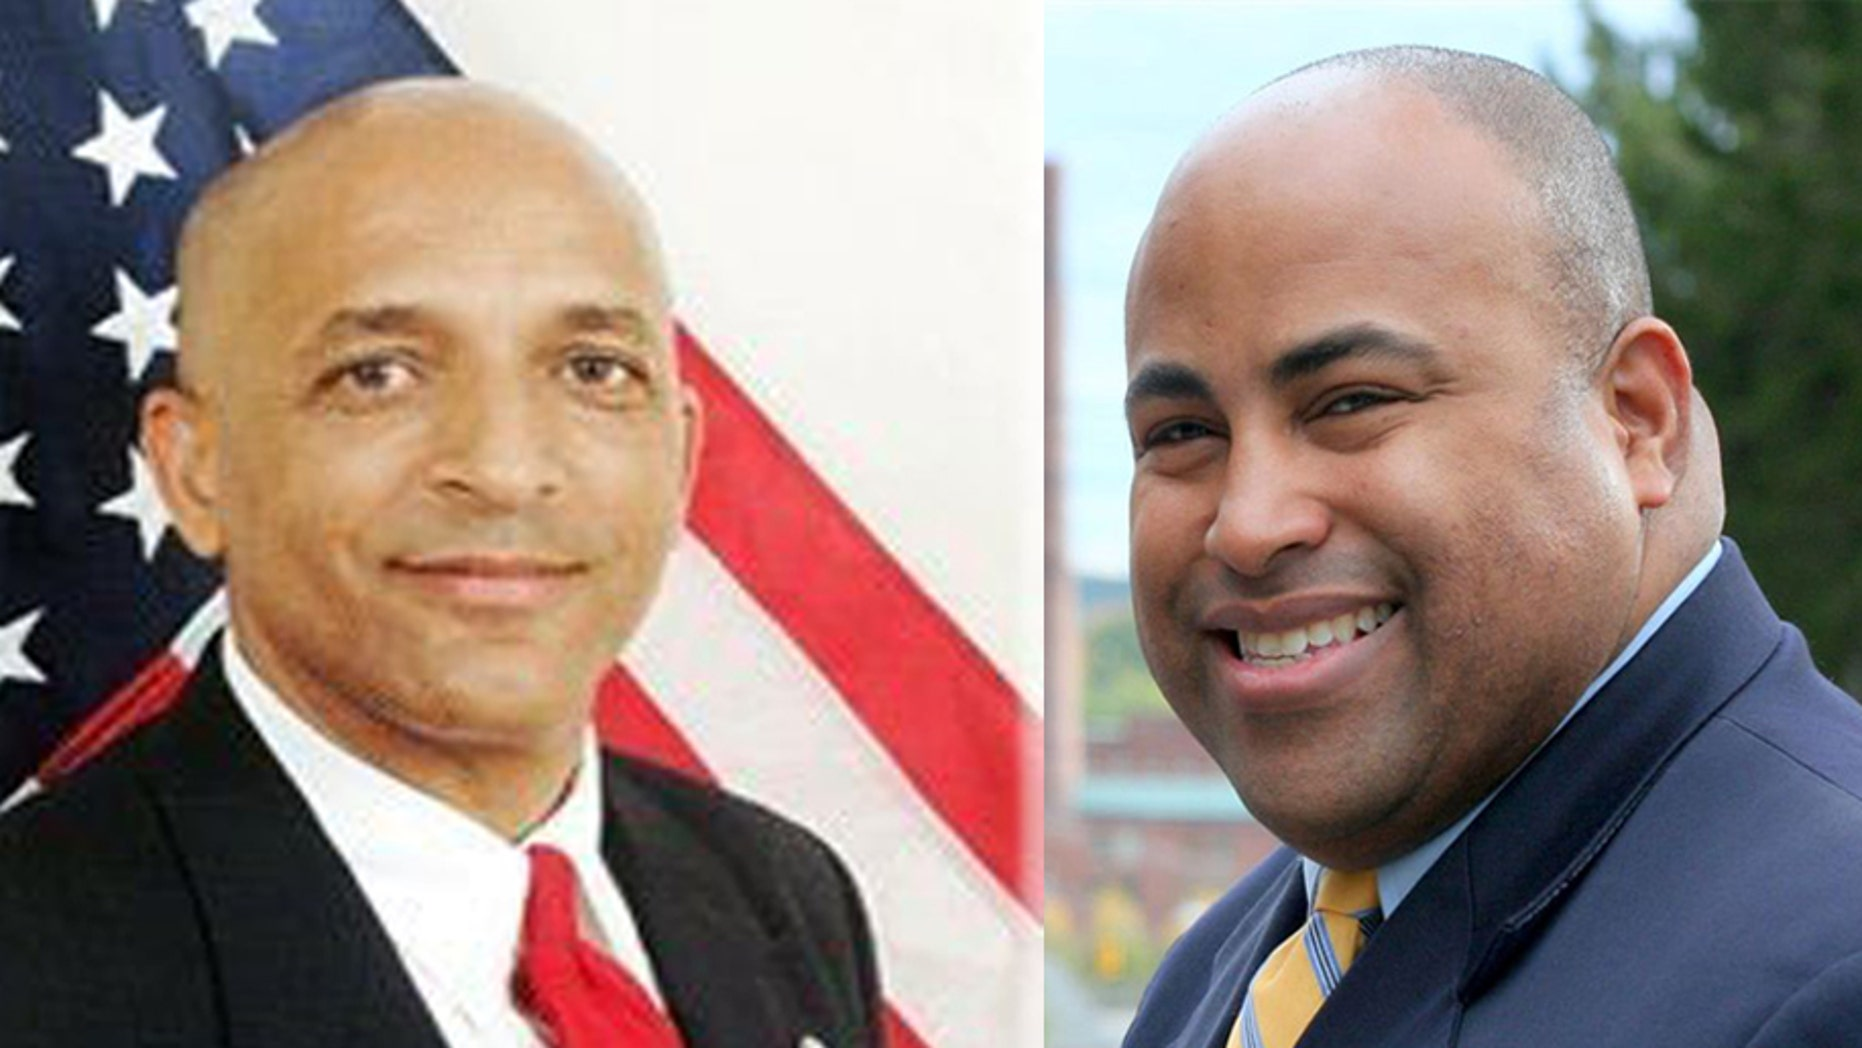 Daniel Rivera (right) a Gulf War veteran and president of the Lawrence City Council, is running against Mayor William Lantigua.